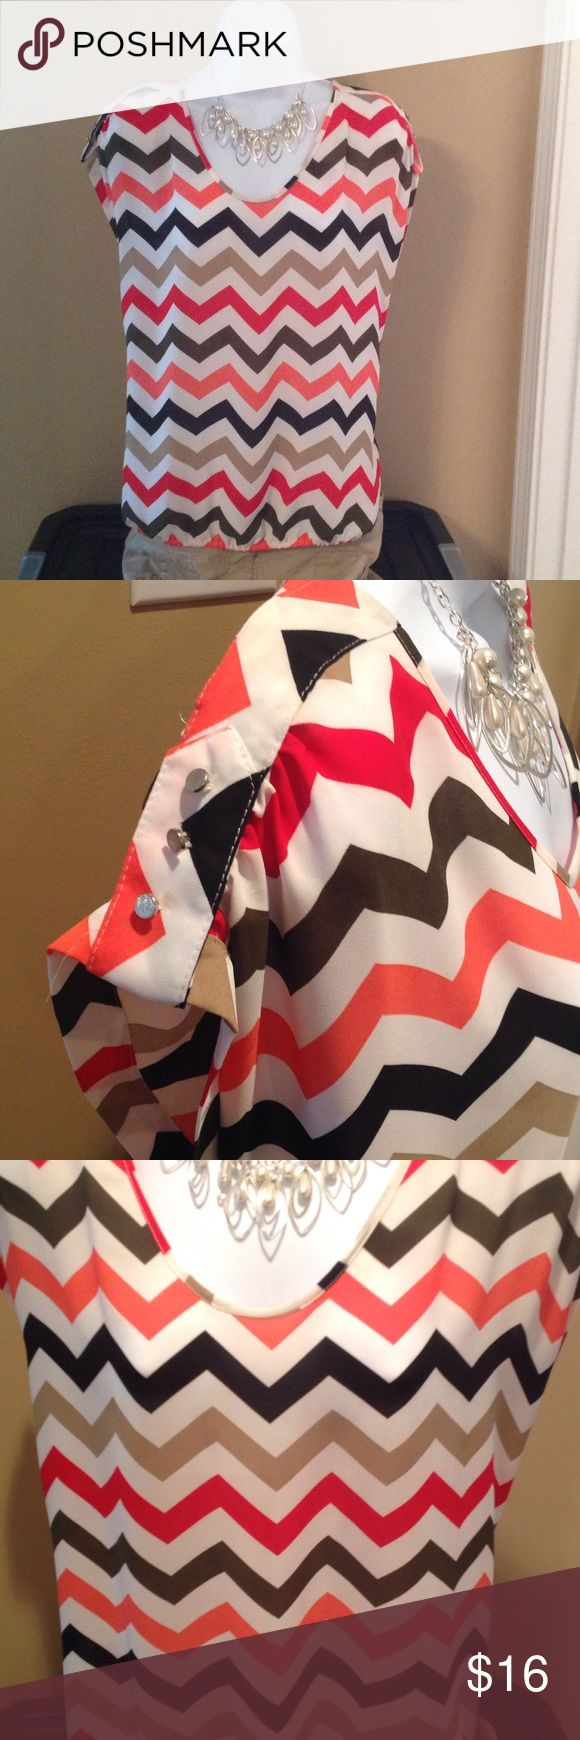 Beautiful chevron blouse Multi colored Chevron striped blouse with cute button detail on sleeves. Also has elastic around bottom roz&ali Tops Blouses